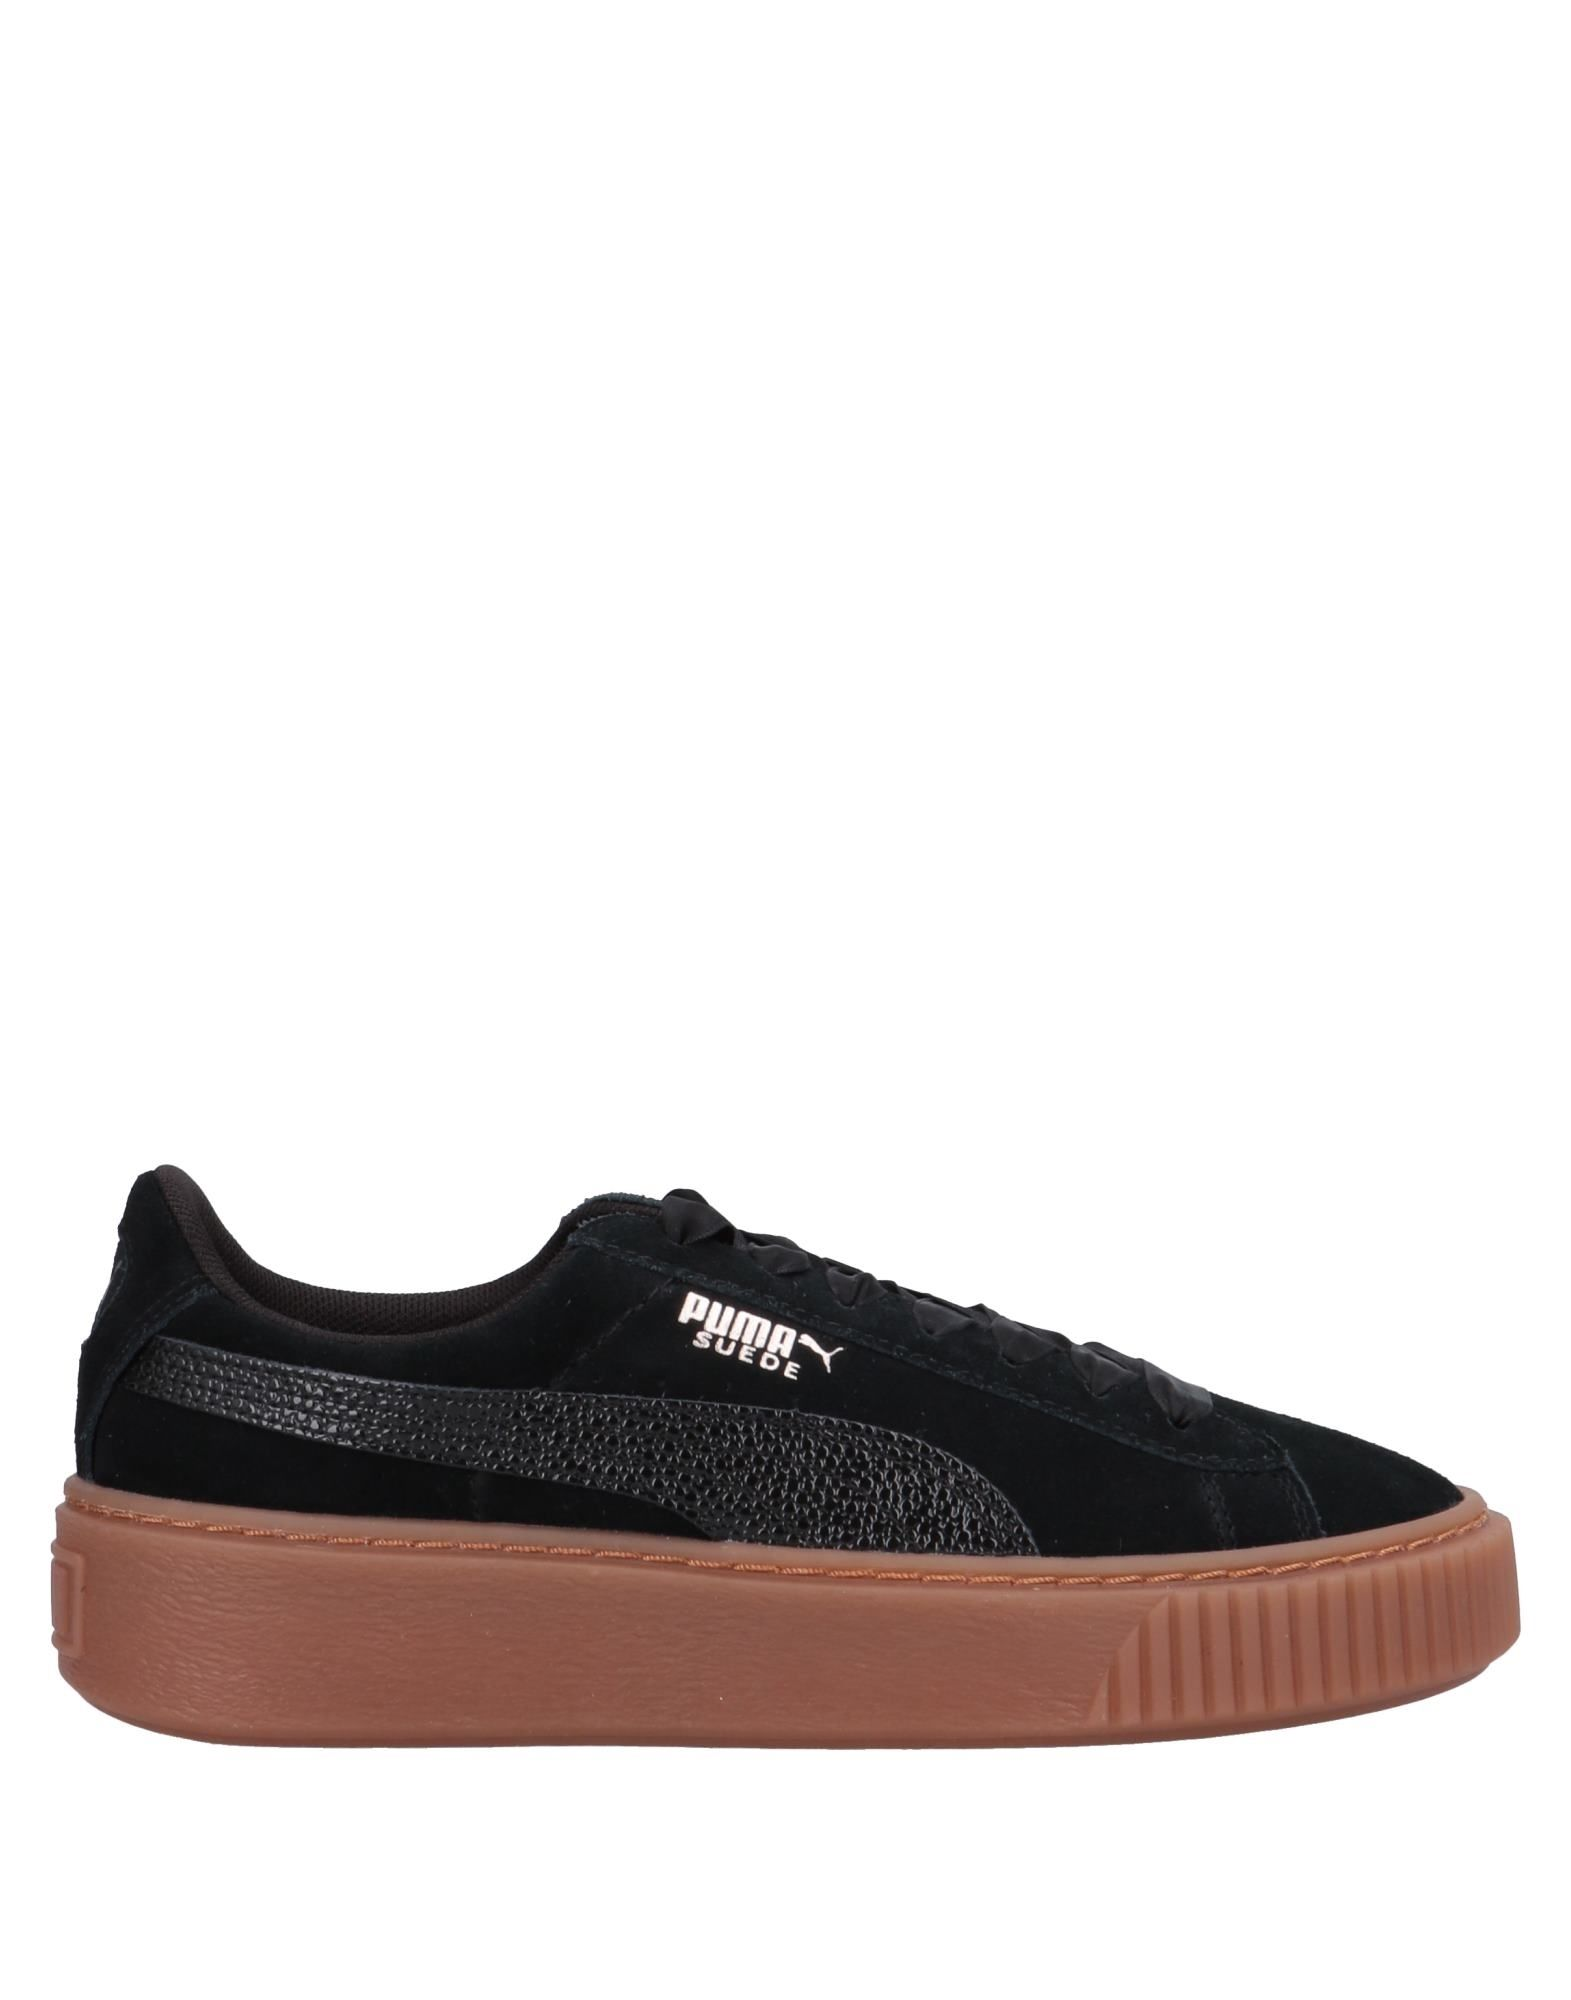 Puma Sneakers - Women  Puma Sneakers online on  Women United Kingdom - 11559181FR 6dbdcf